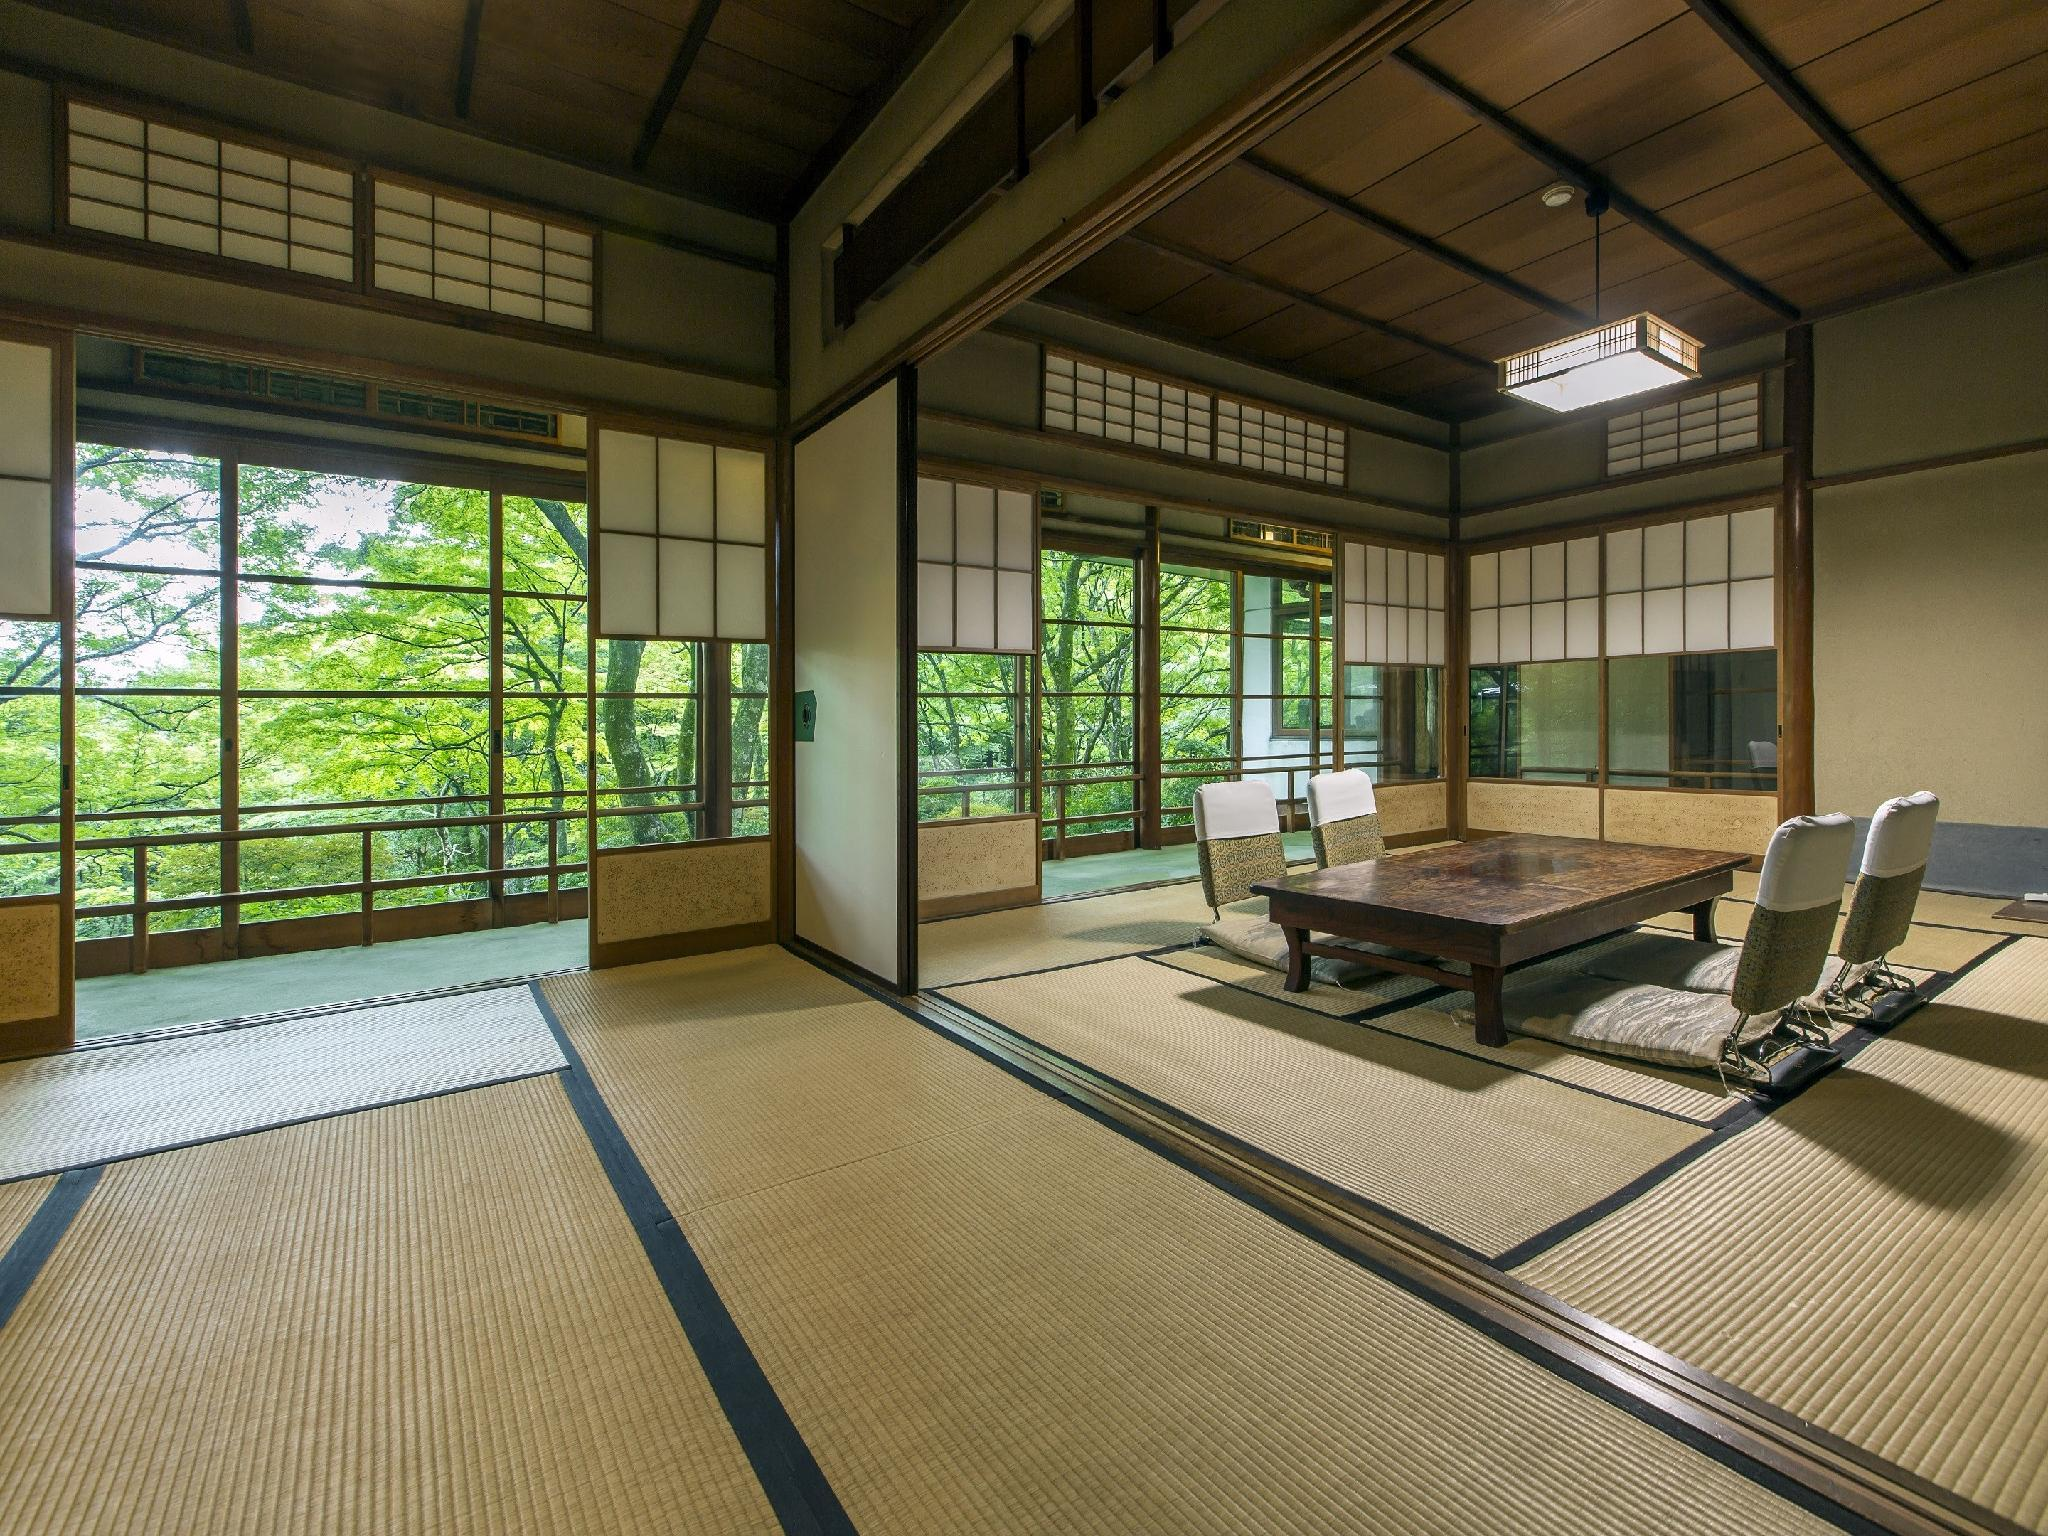 Detached Deluxe Japanese/Western-style Room with Indoor Hot Spring Bath (Kinkatei/Hashuan Type)